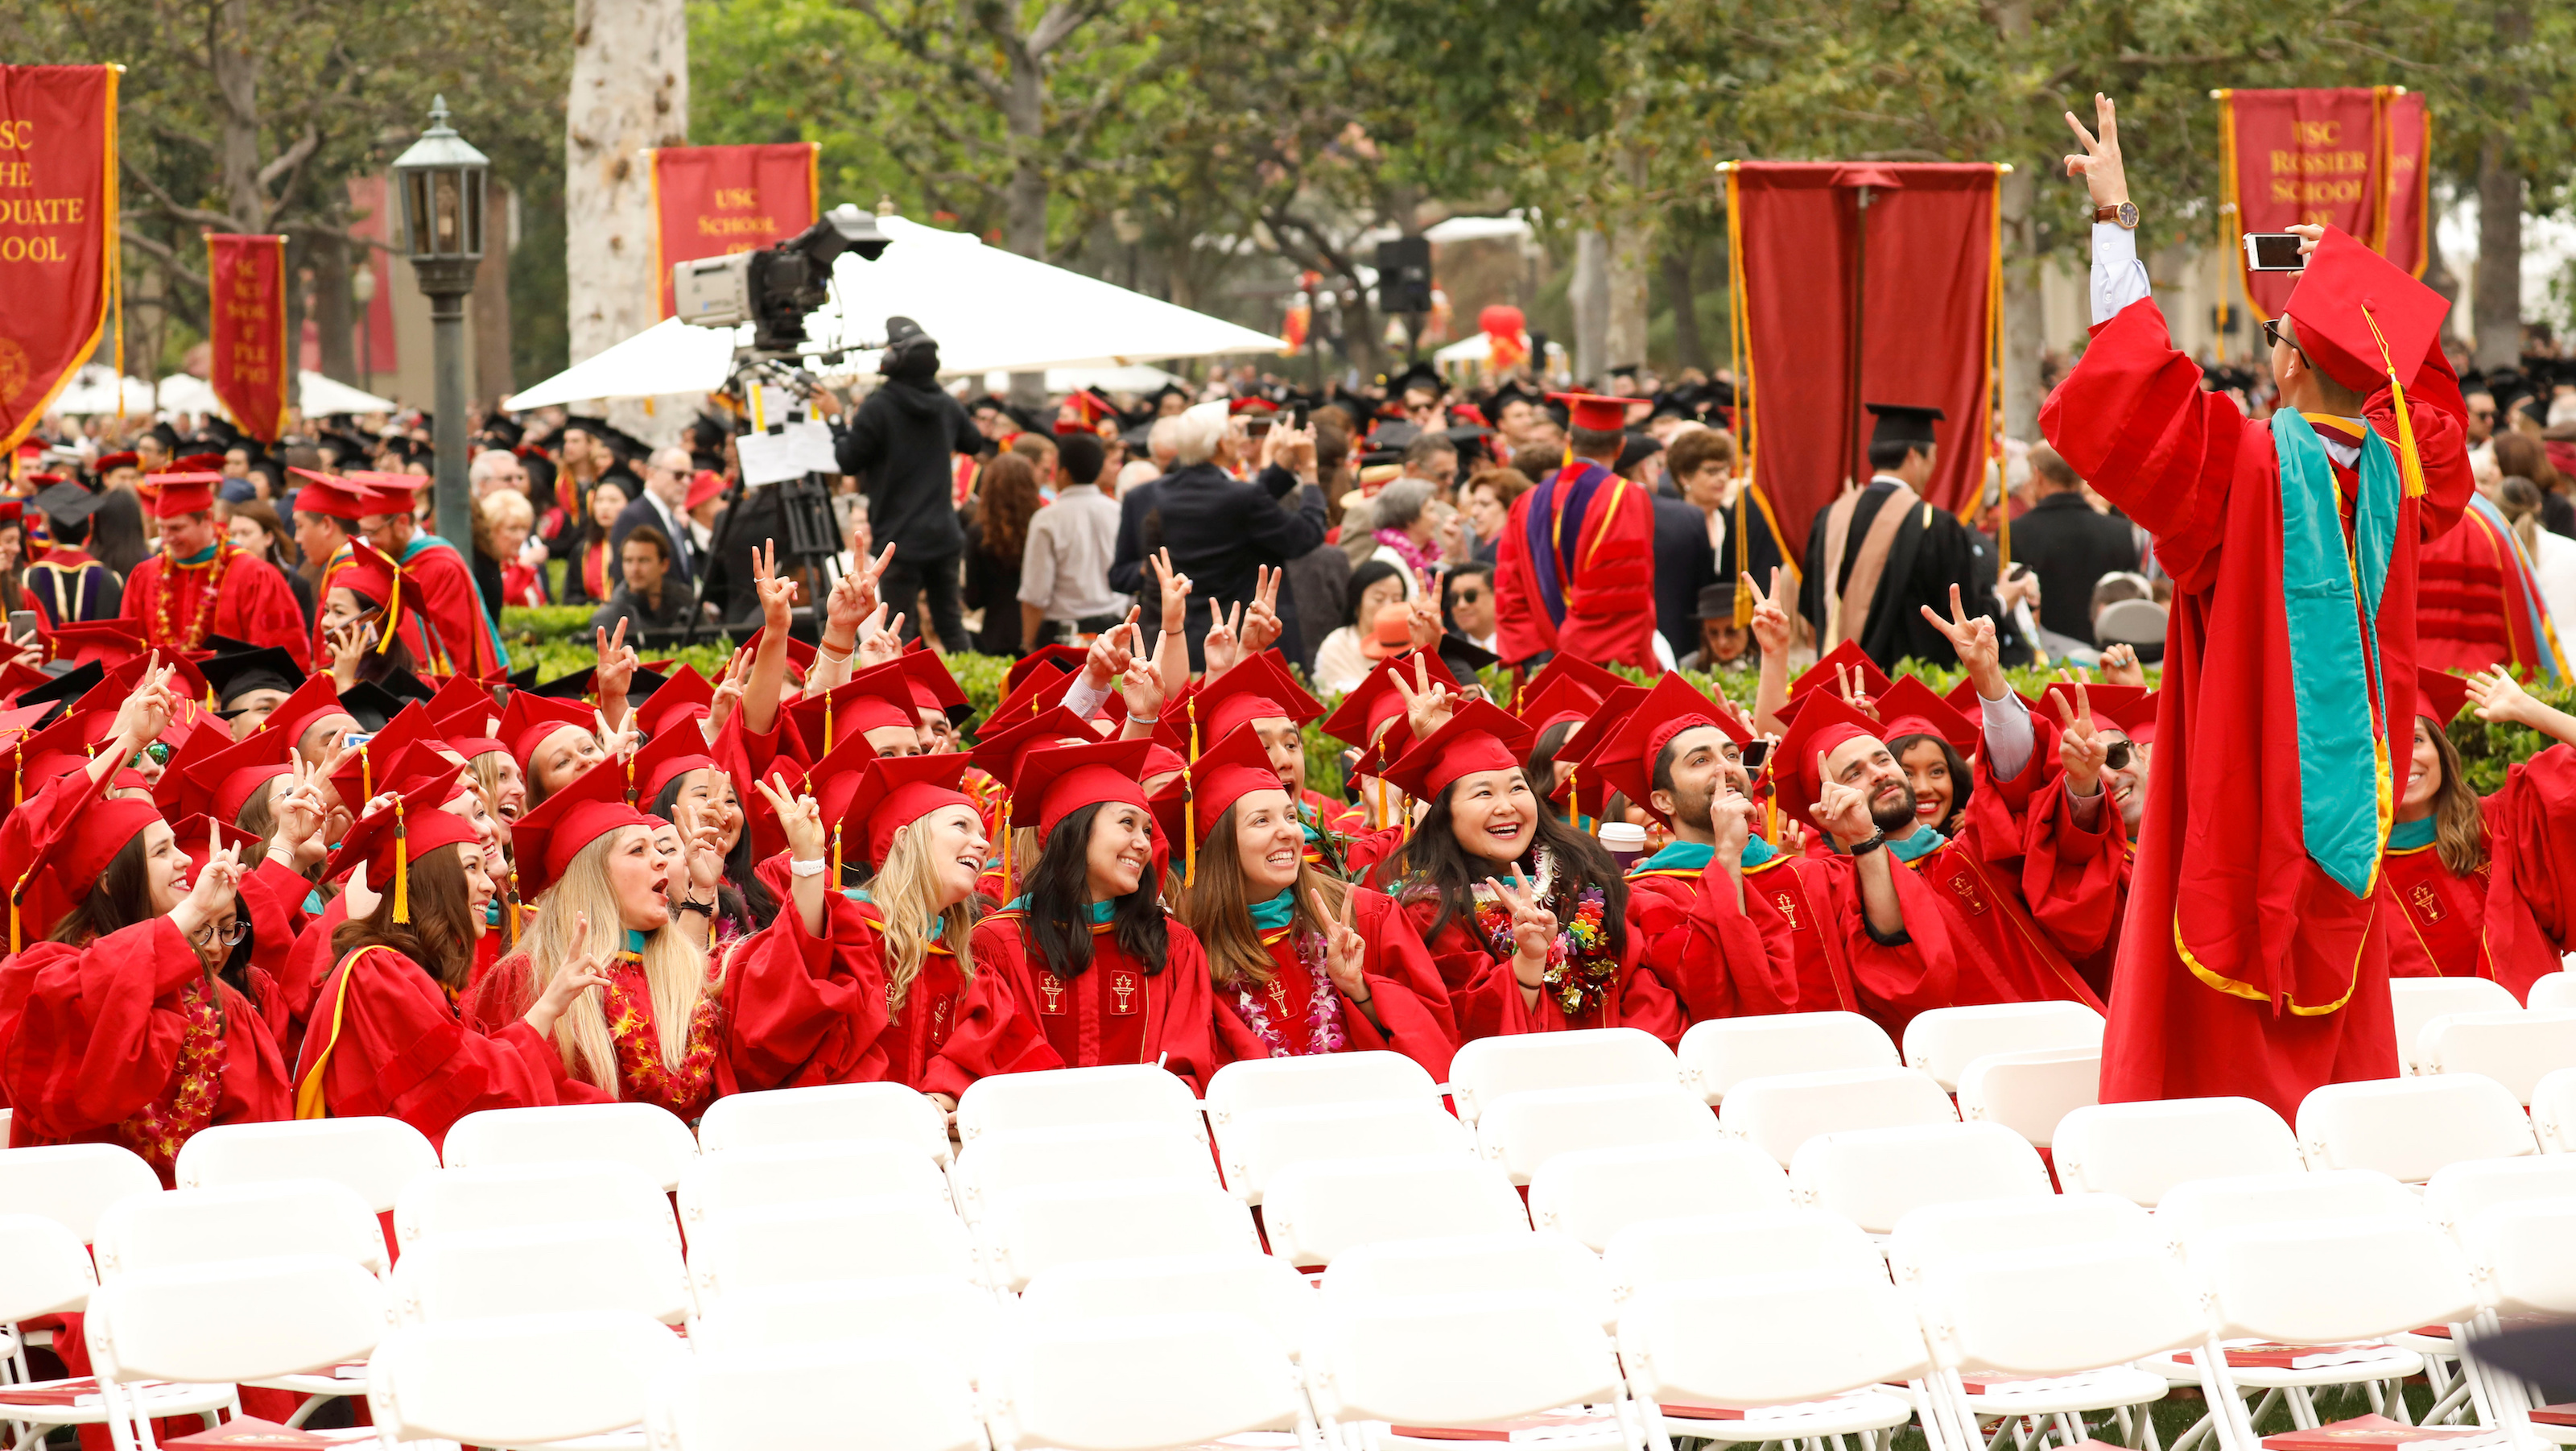 Graduates to be take pictures before the commencement ceremony at the University of Southern California (USC) in Los Angeles, California, U.S., May 12, 2017. REUTERS/Patrick T. Fallon - RTS16FBC